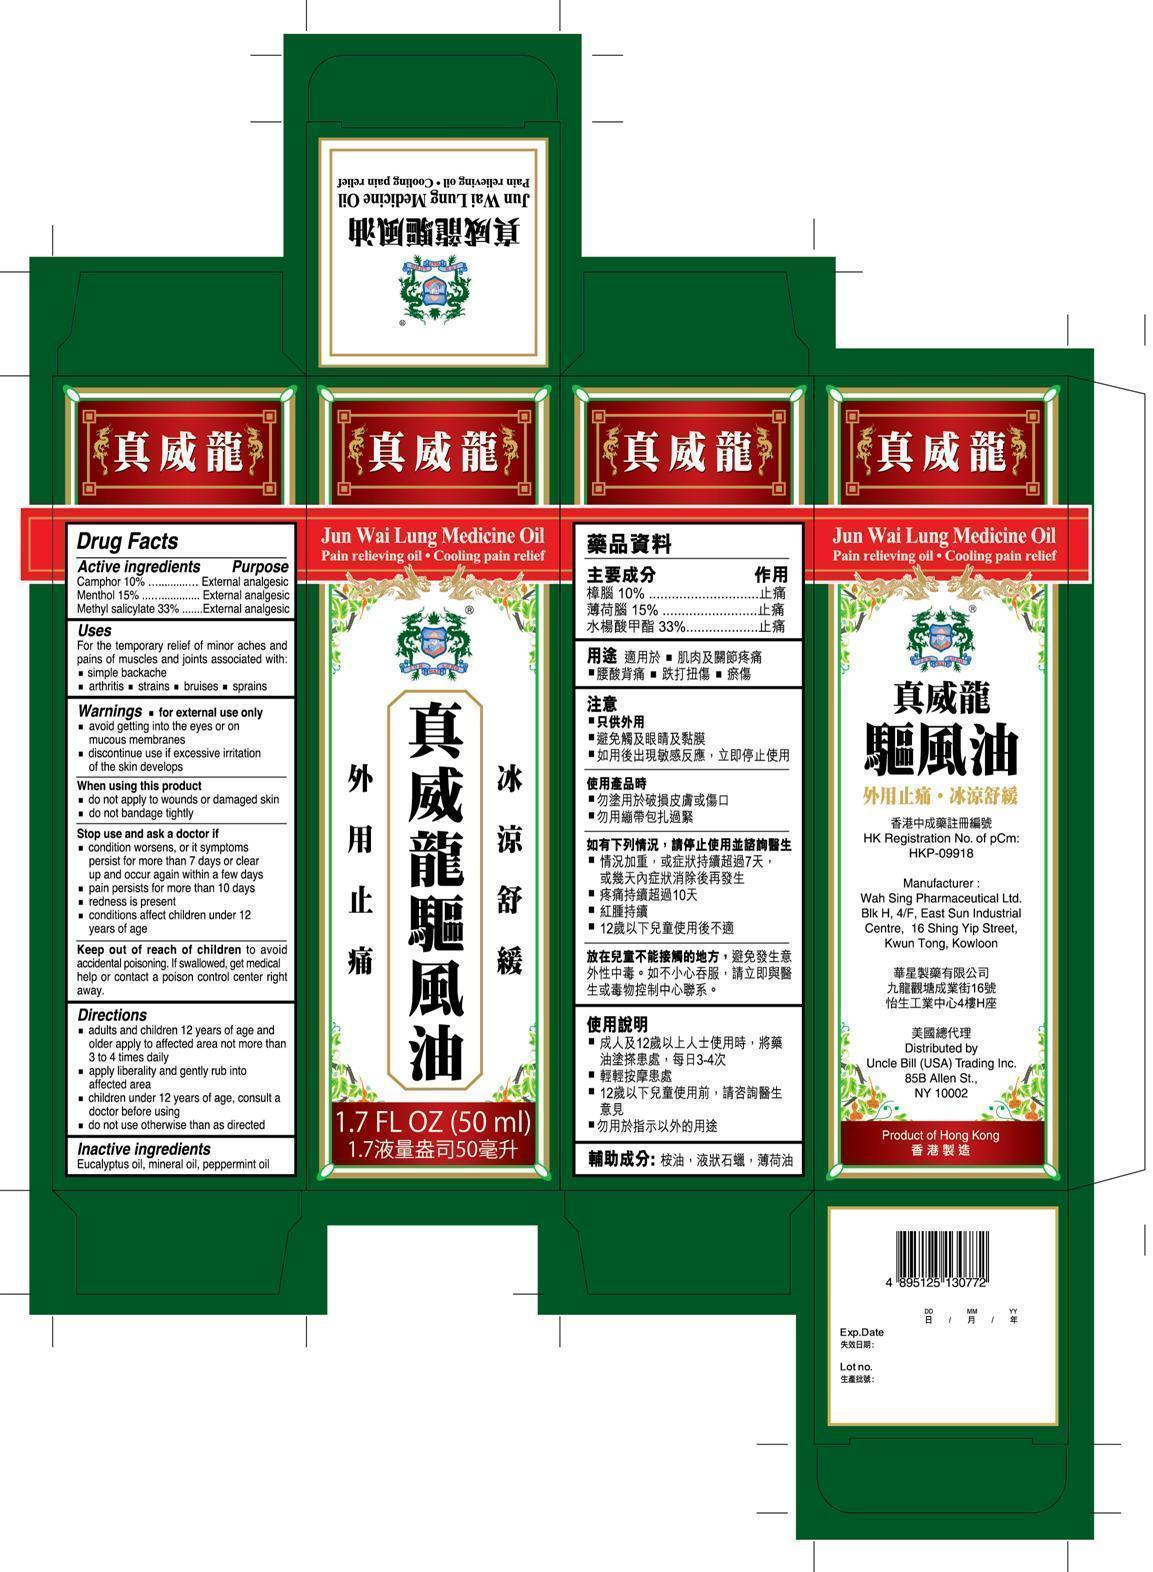 Jun Wai Lung Medicine Pain Relieving (Camphor Menthol Methyl Salicylate) Oil [Wah Sing Pharmaceutical Limited]